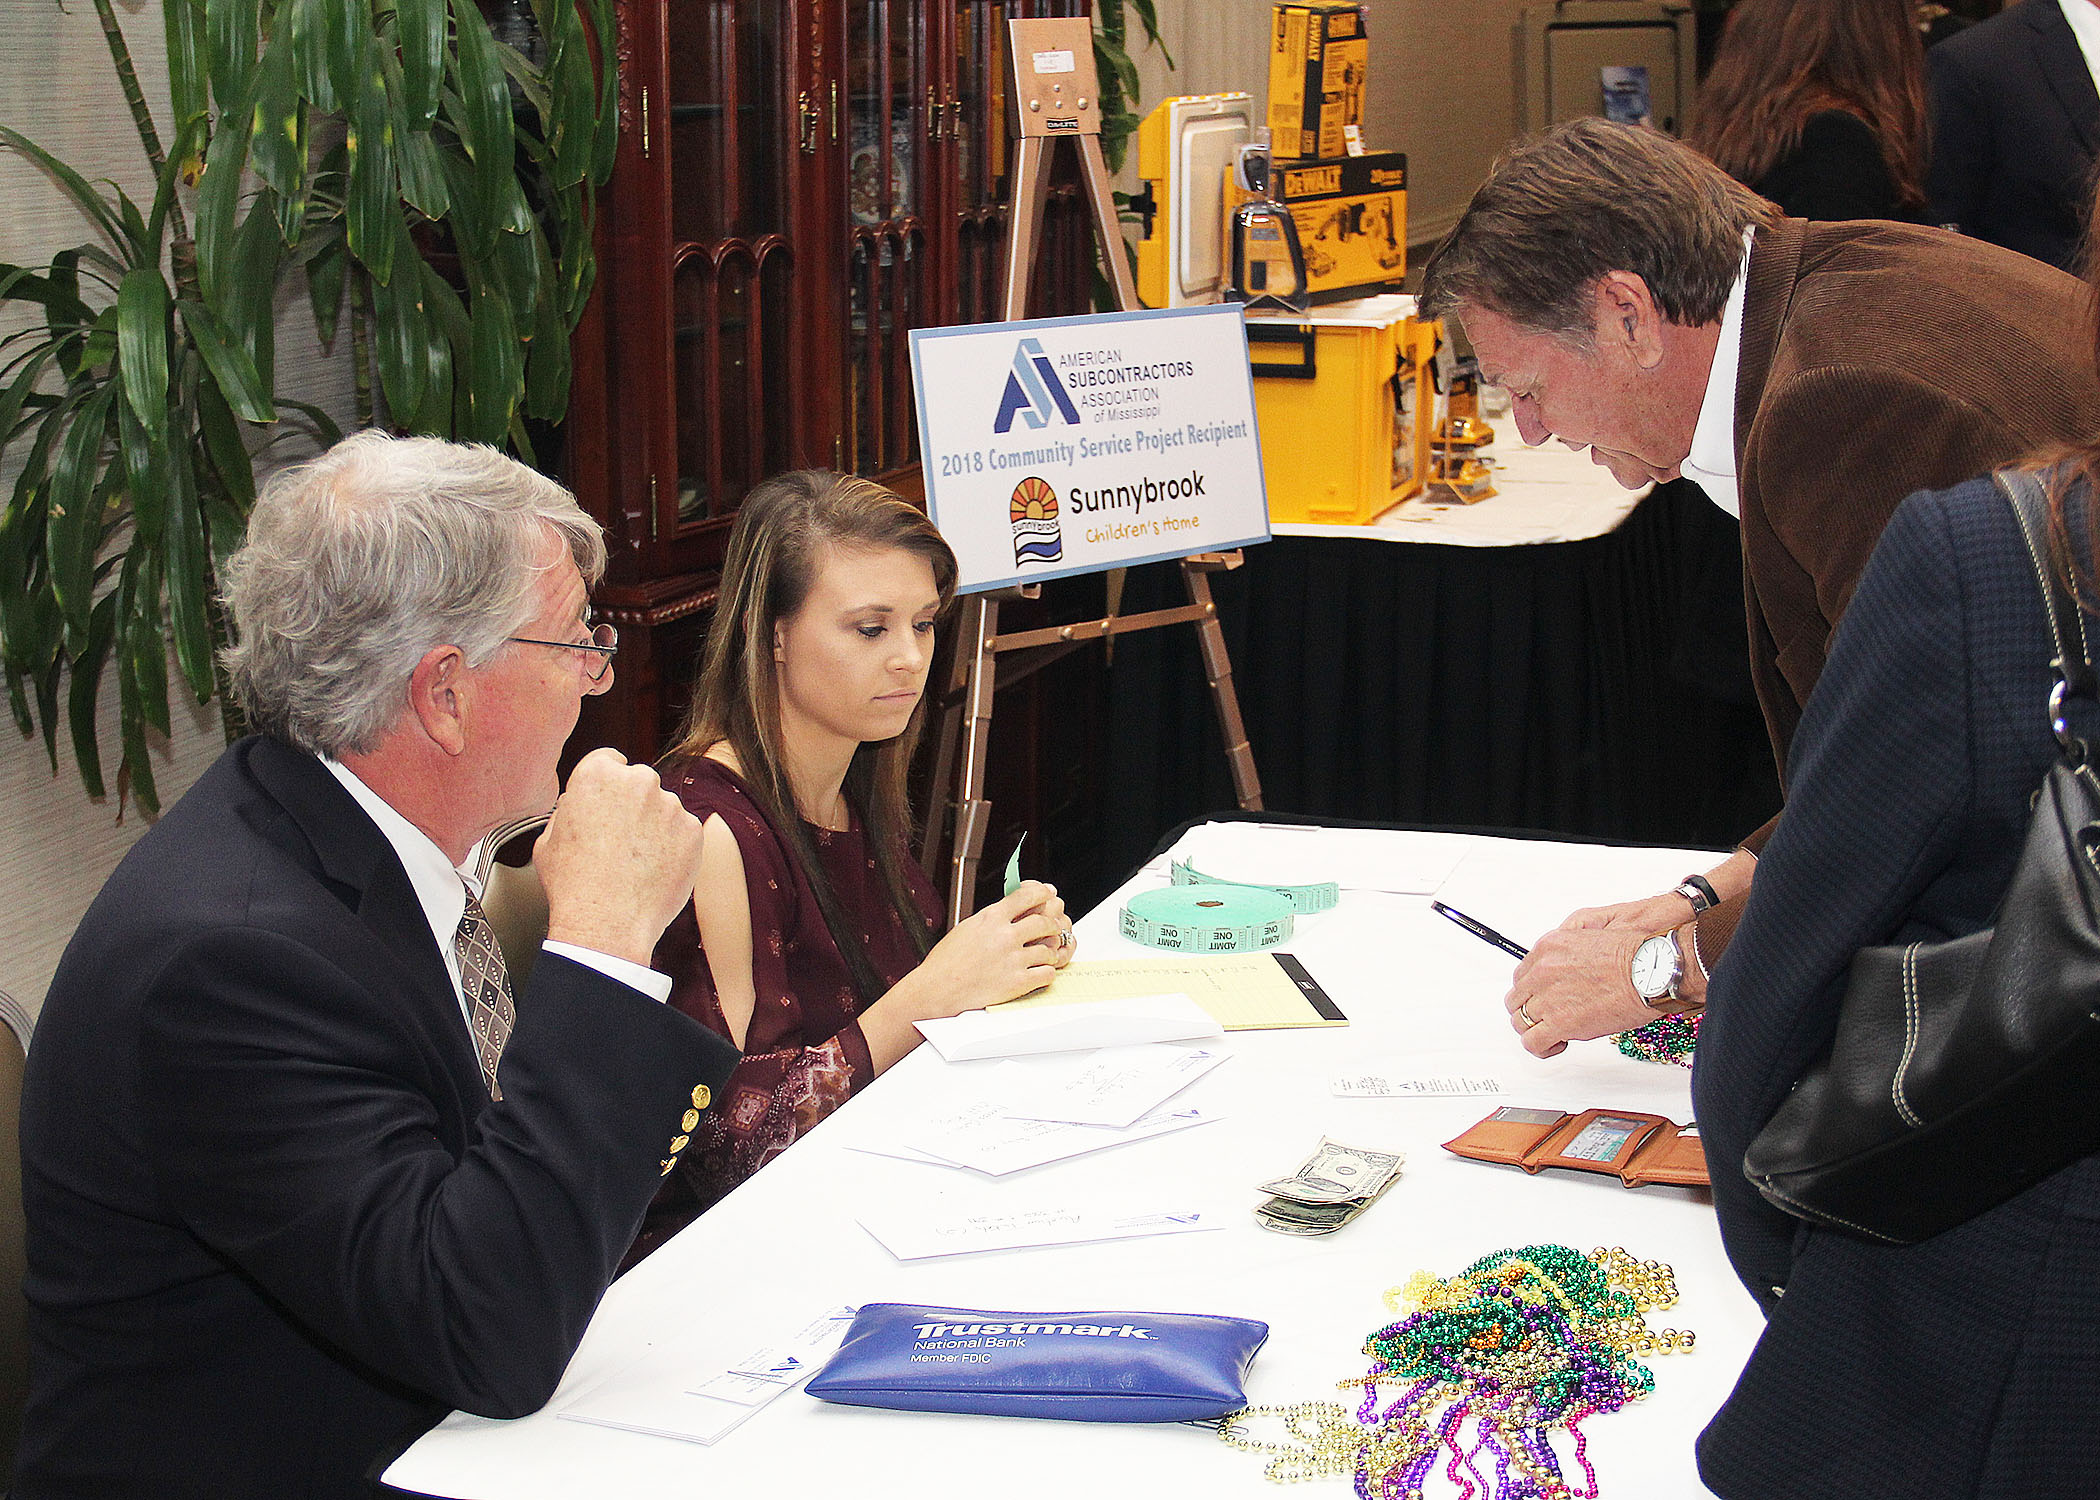 American Subcontractors Association of Mississippi  Image # 51